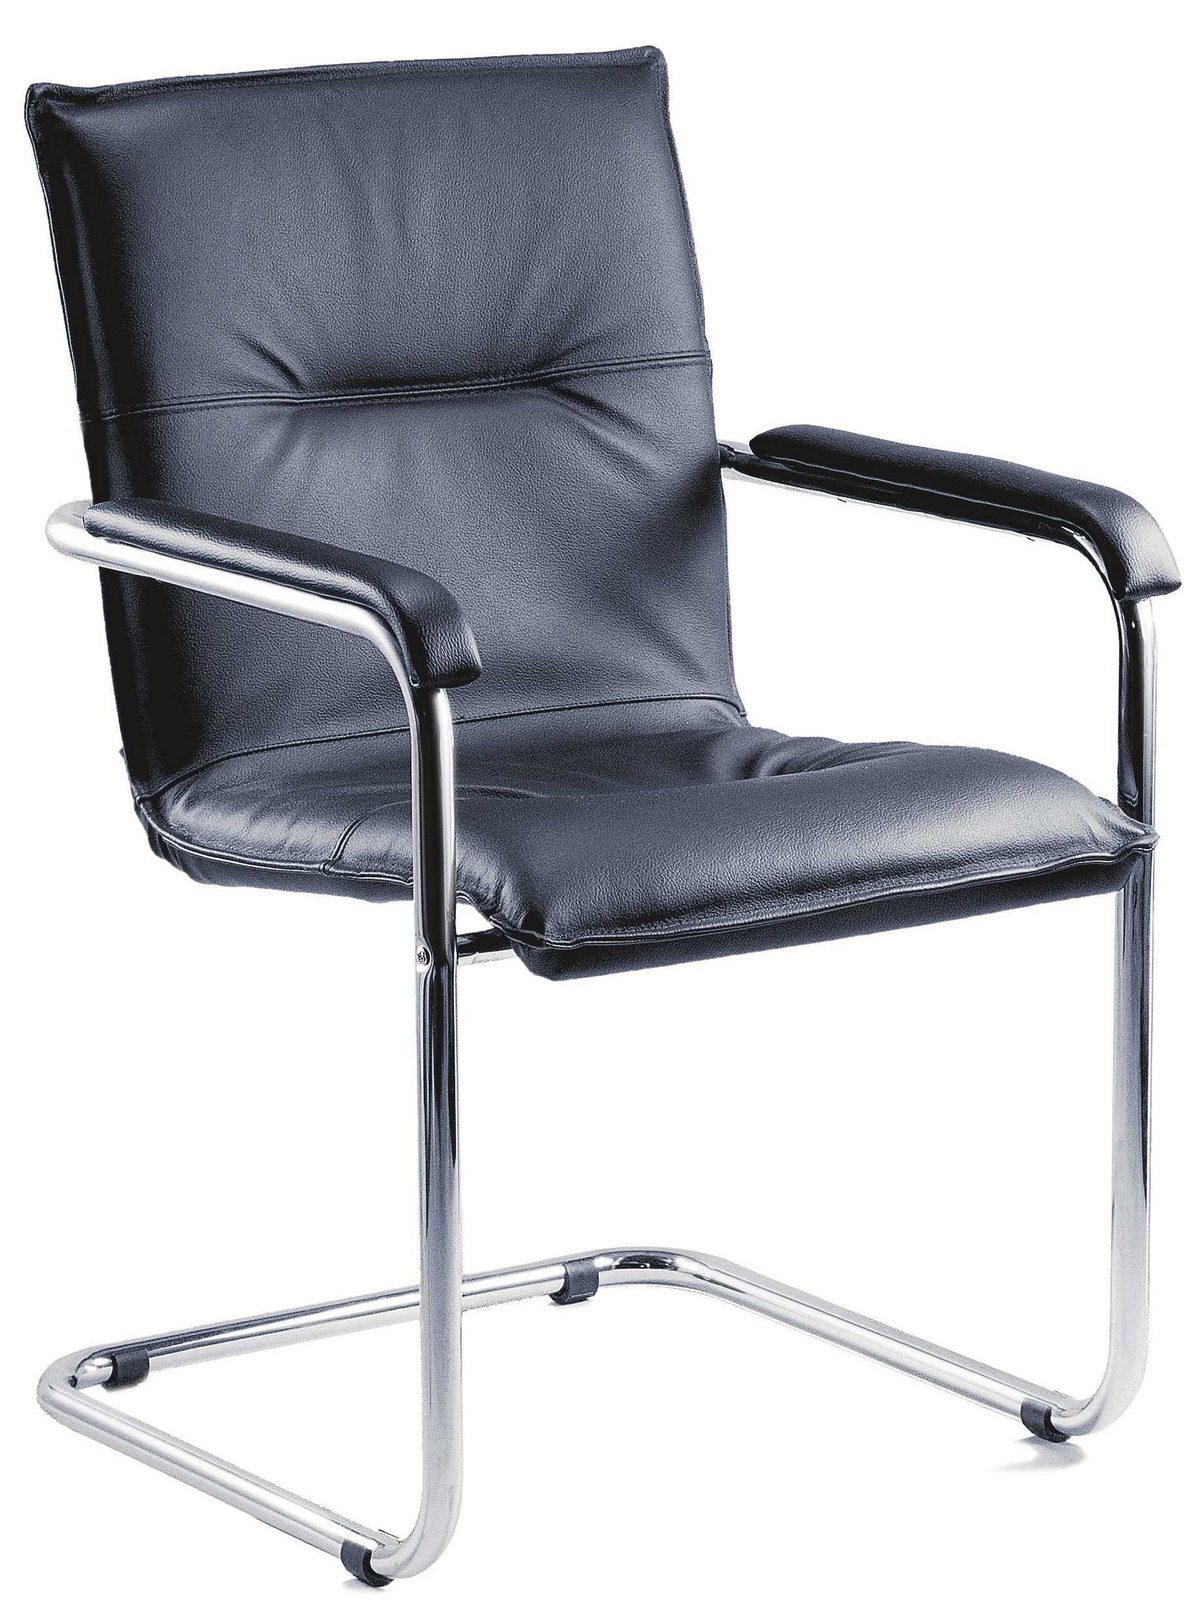 Her Leather Faced V itor Office Chair